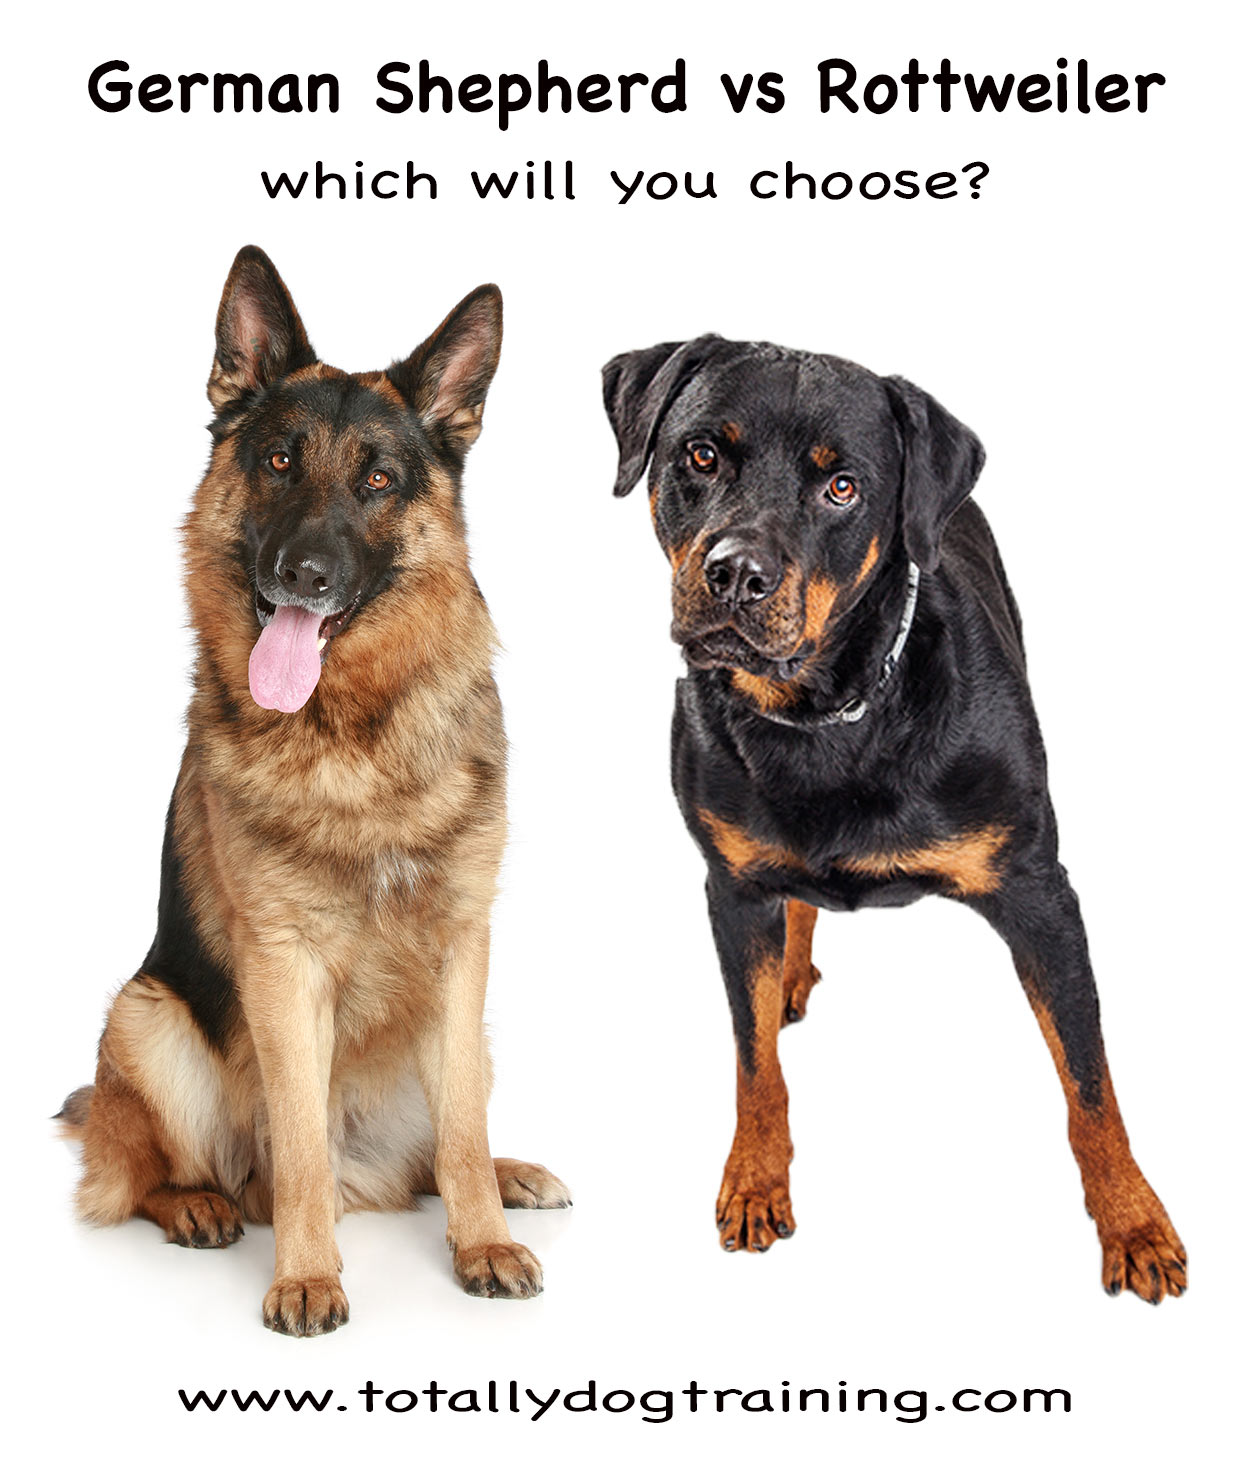 Rottweiler Vs German Shepherd - Which Pet Is Right For Me?